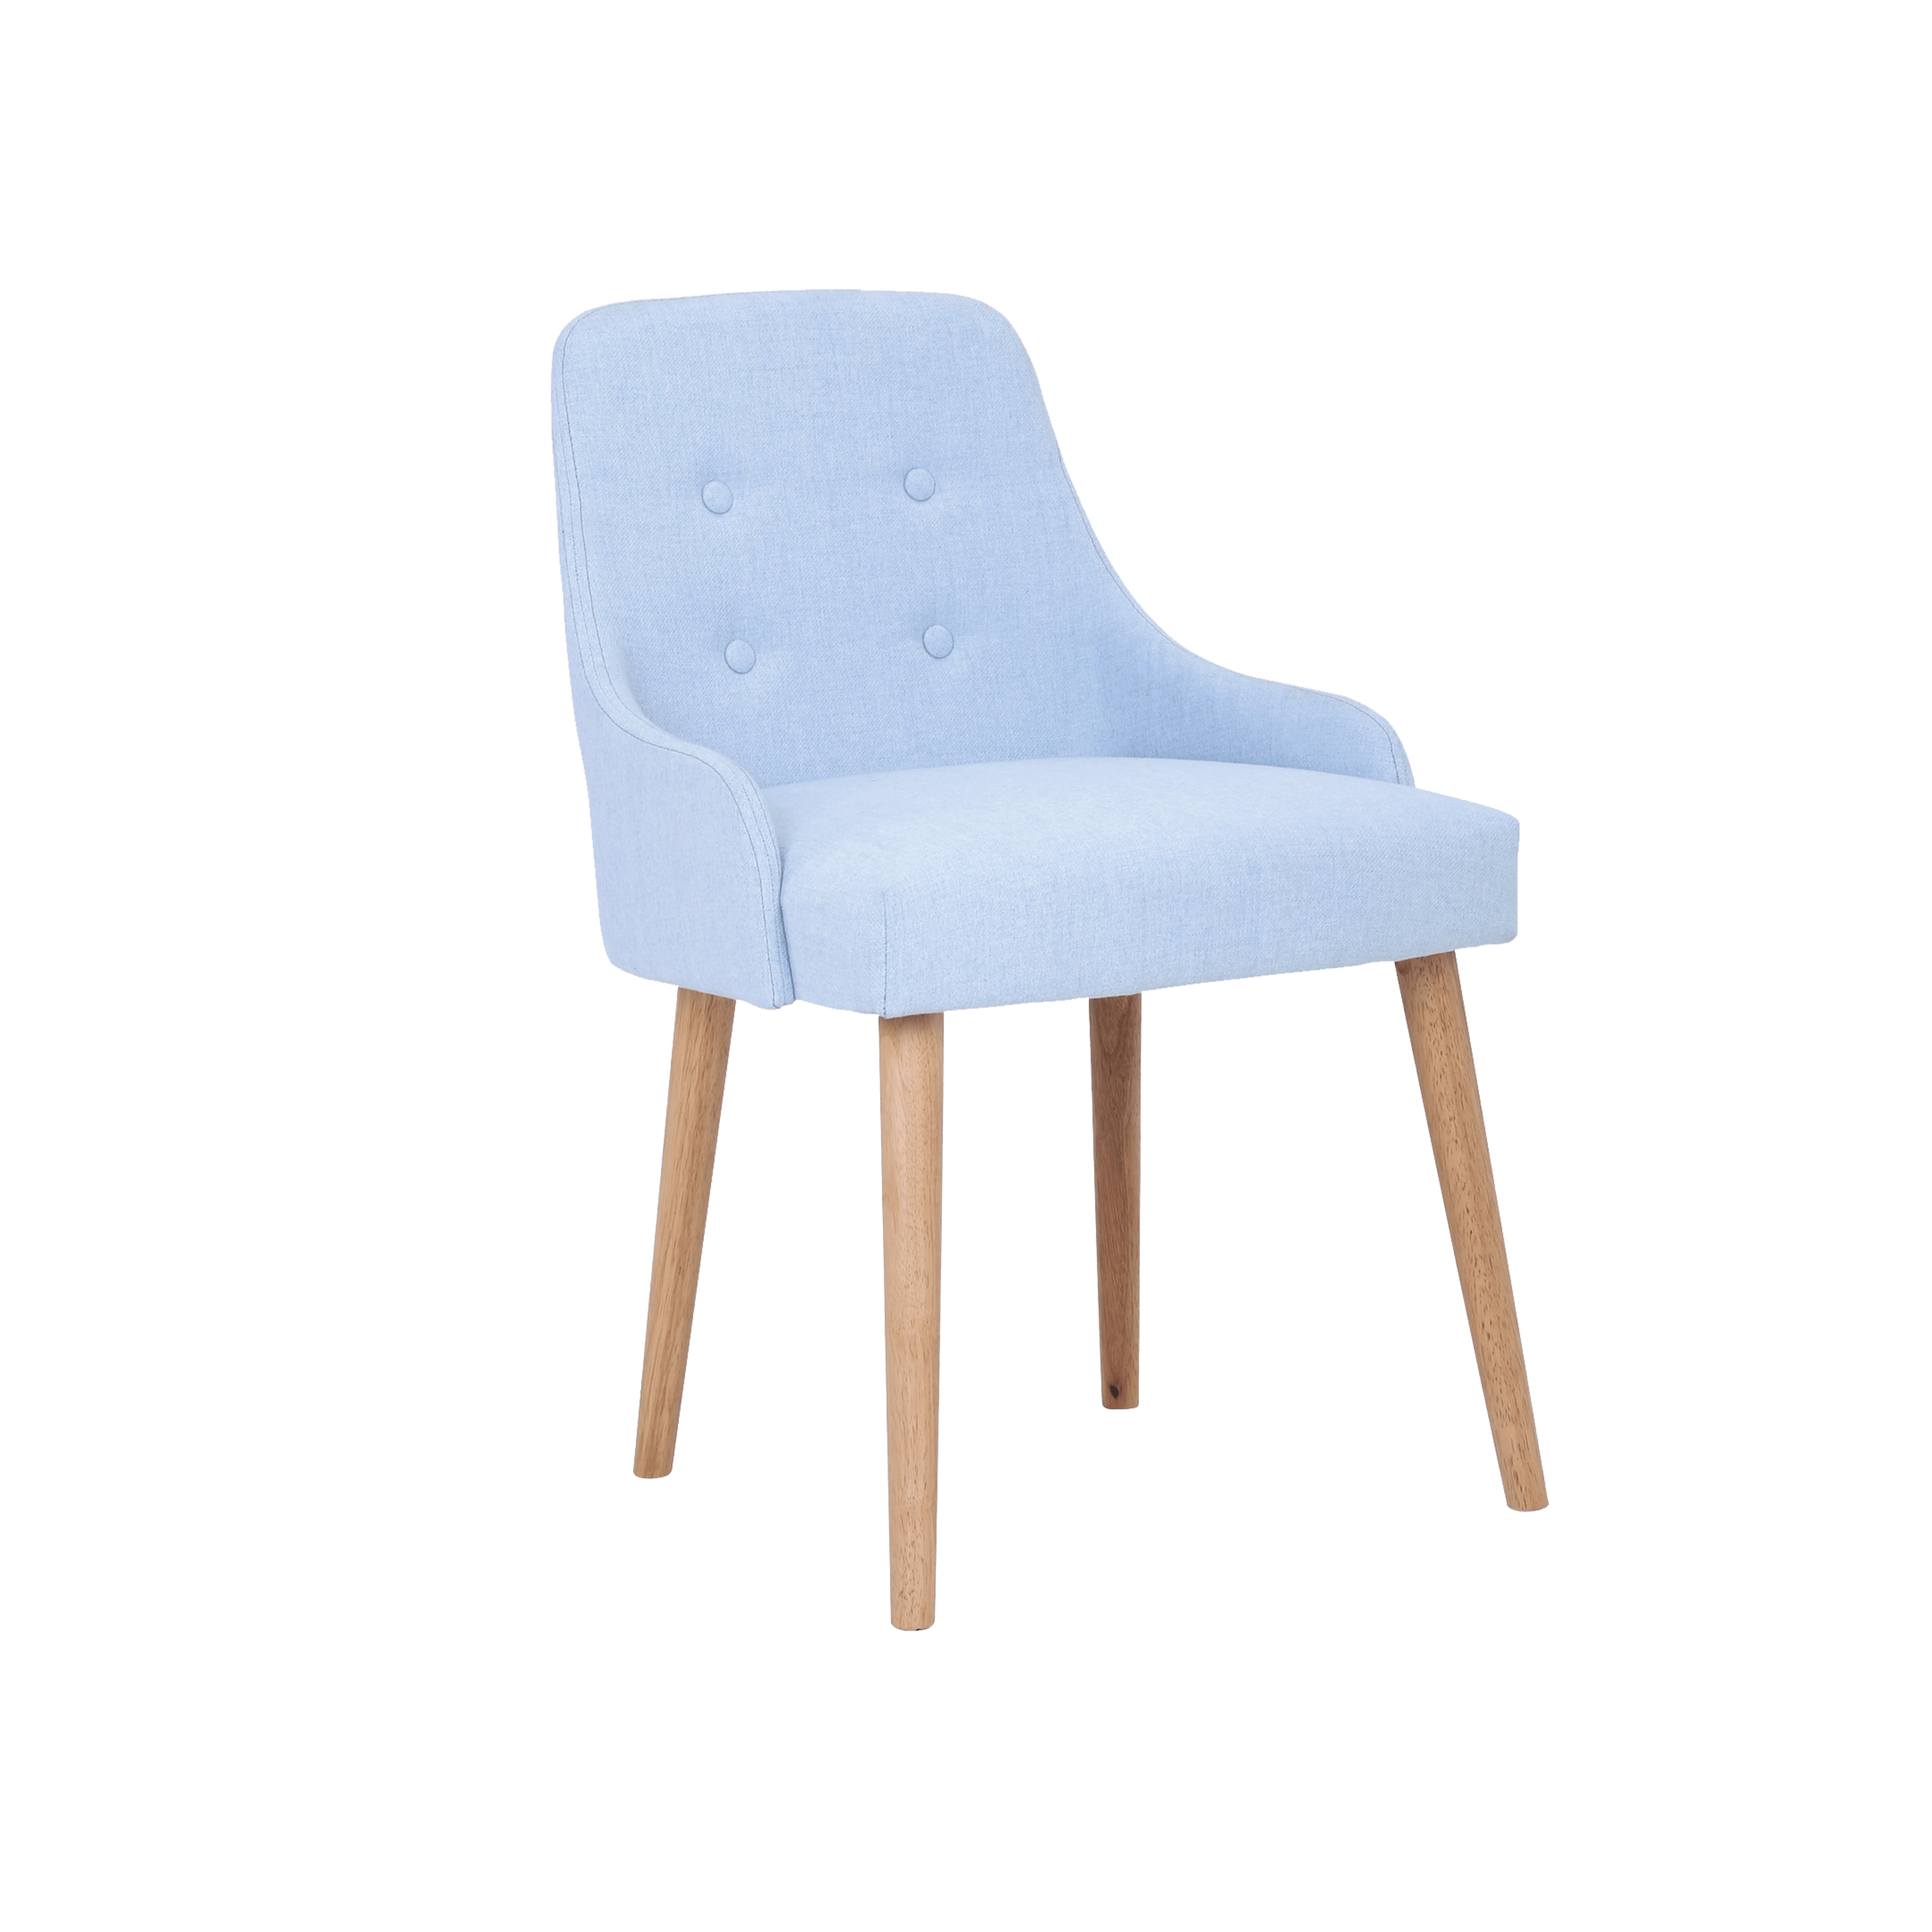 Caitlin_Chair_Pale_Blue_Natural_Angle.png?w=300;fm=jpg;q=80?fm=jpg;q=85;w=300